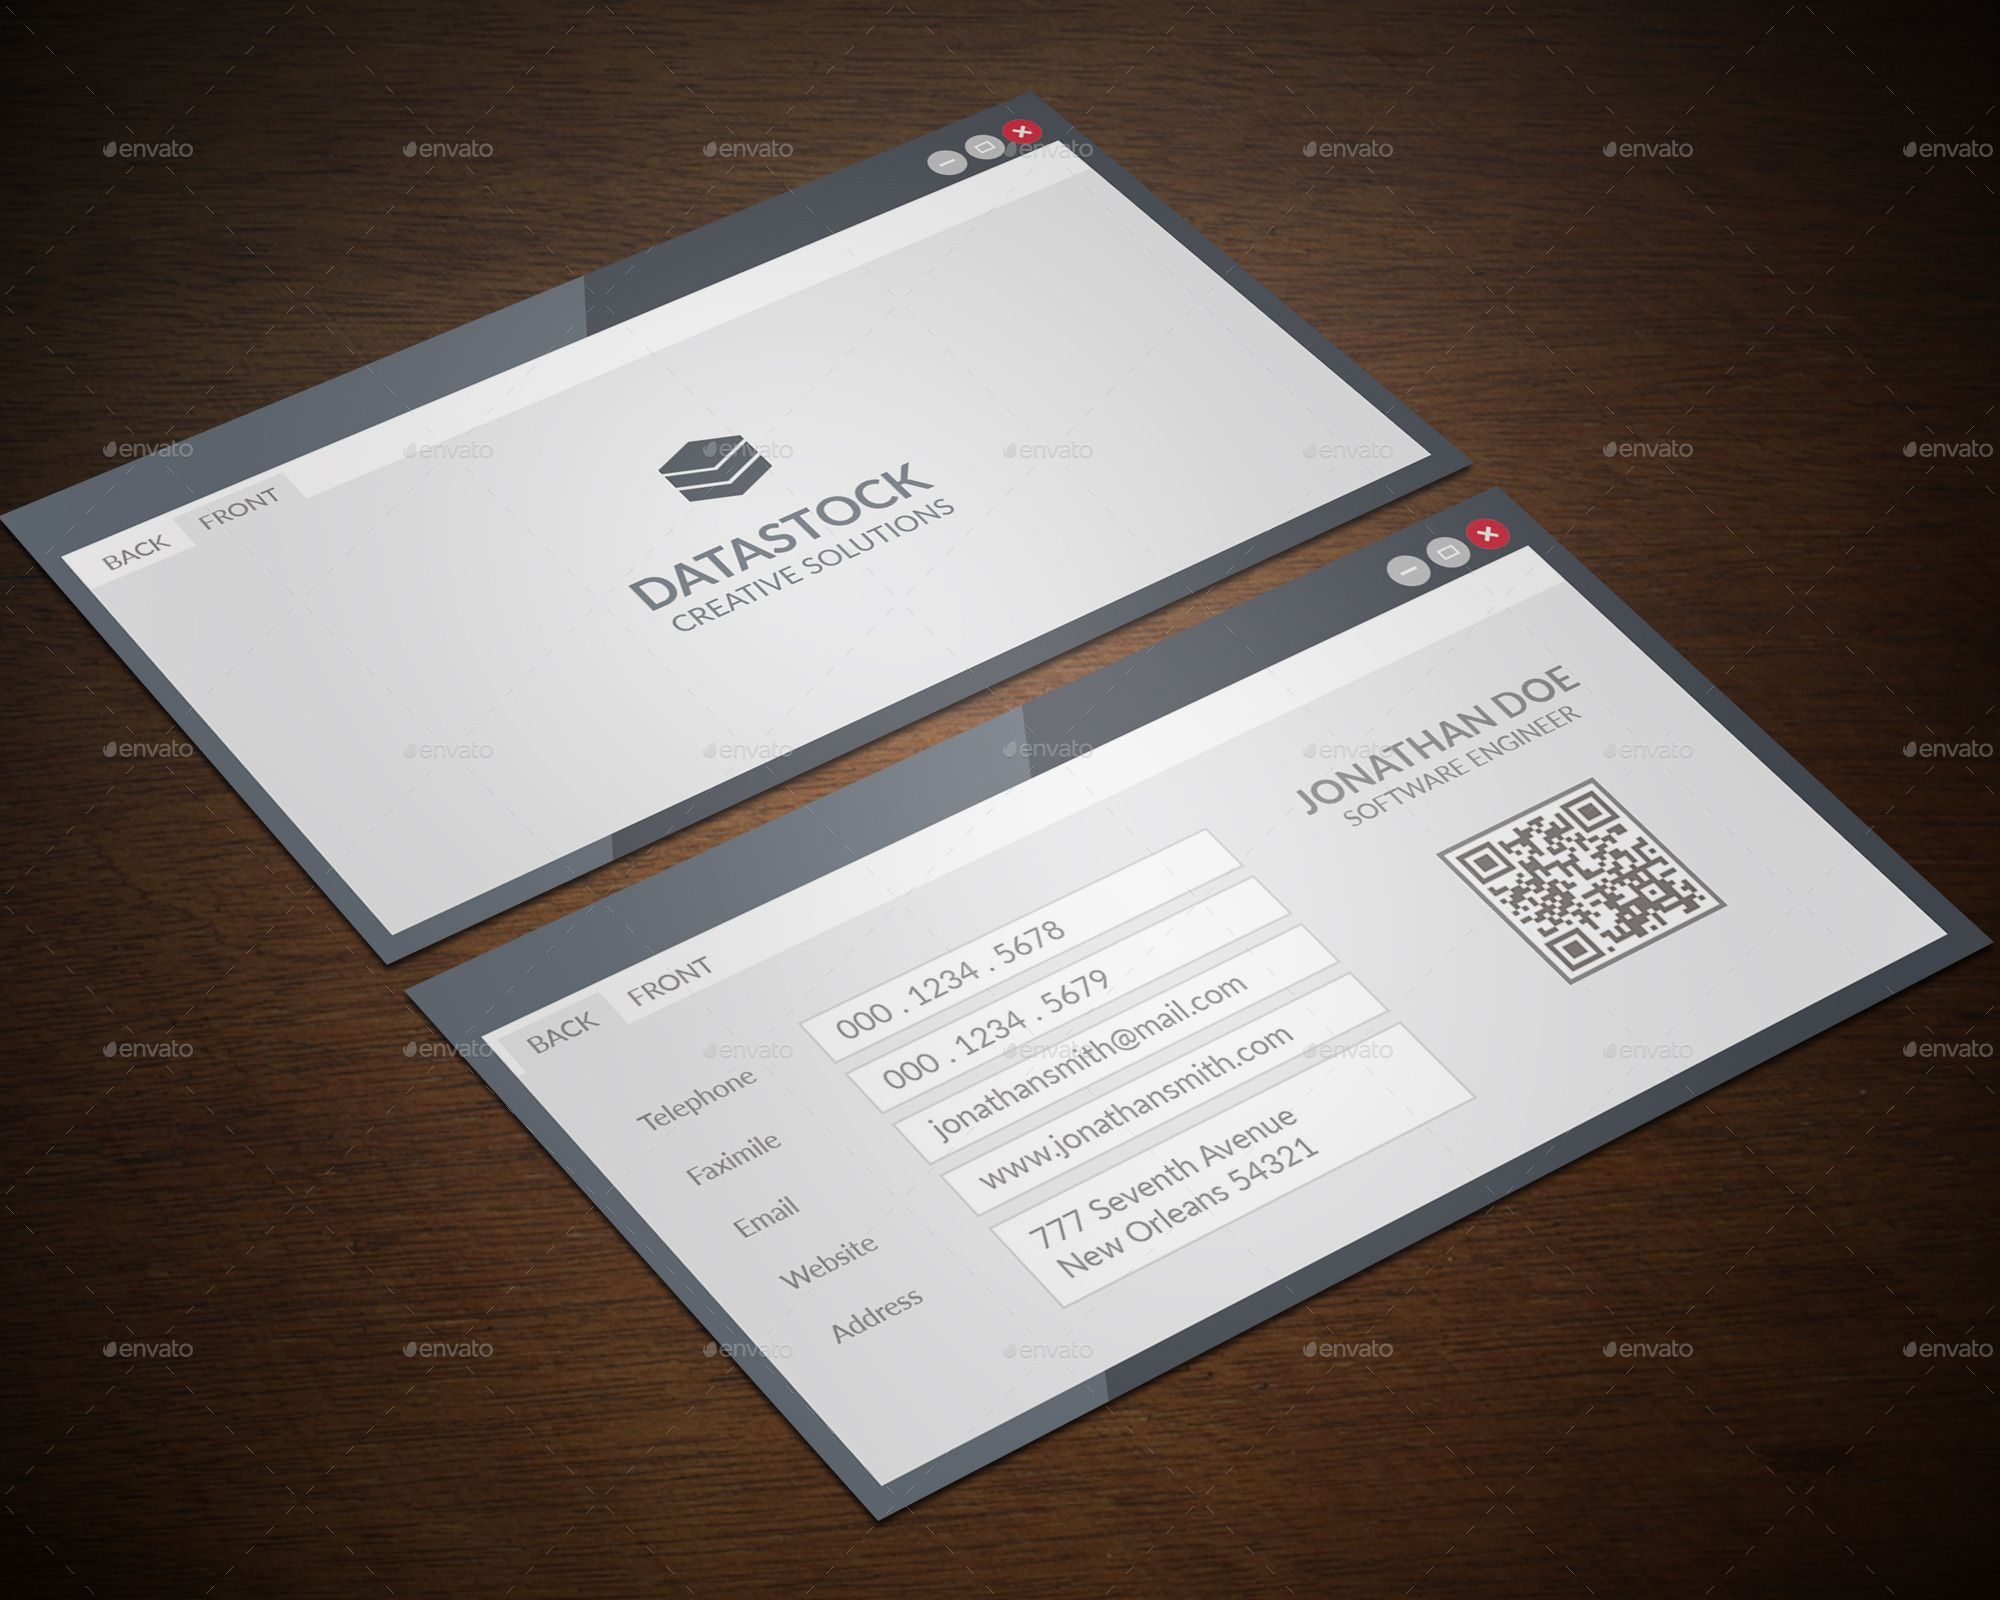 Software Engineer Business Card | Business cards, Software and ...